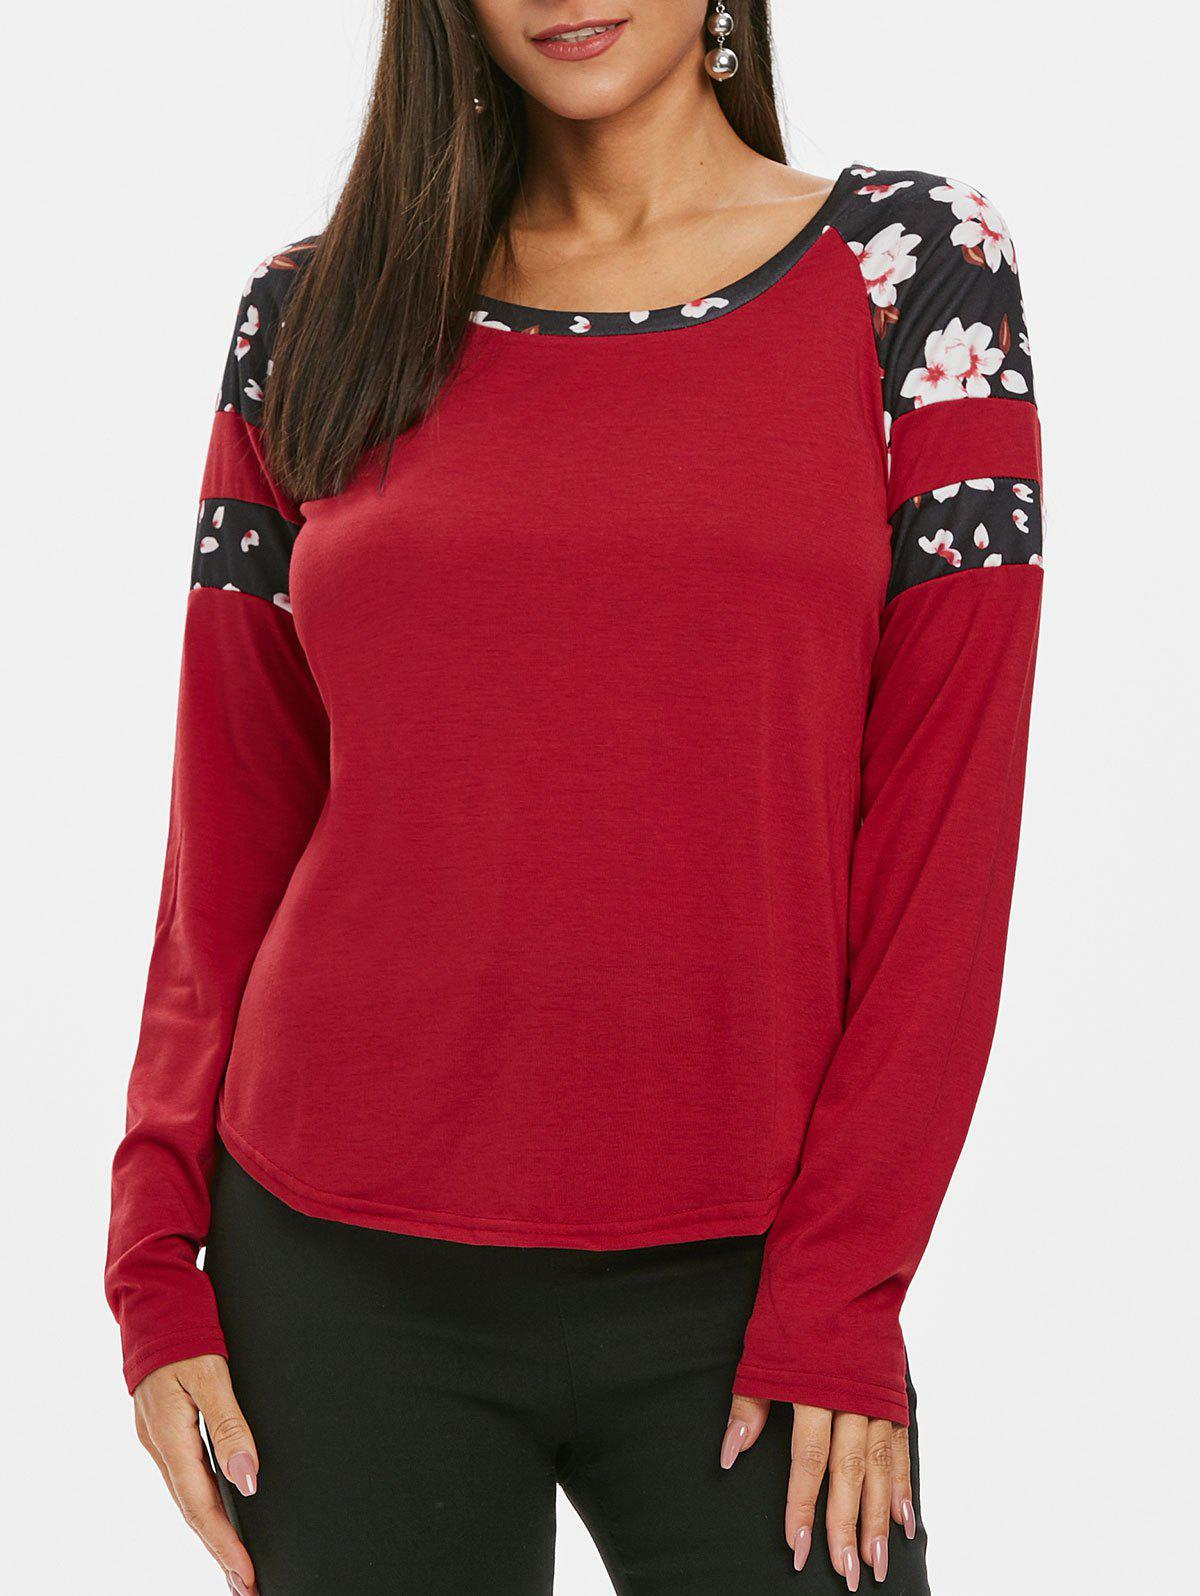 Flower Print Patch Raglan Sleeve Curved T Shirt - RED WINE S